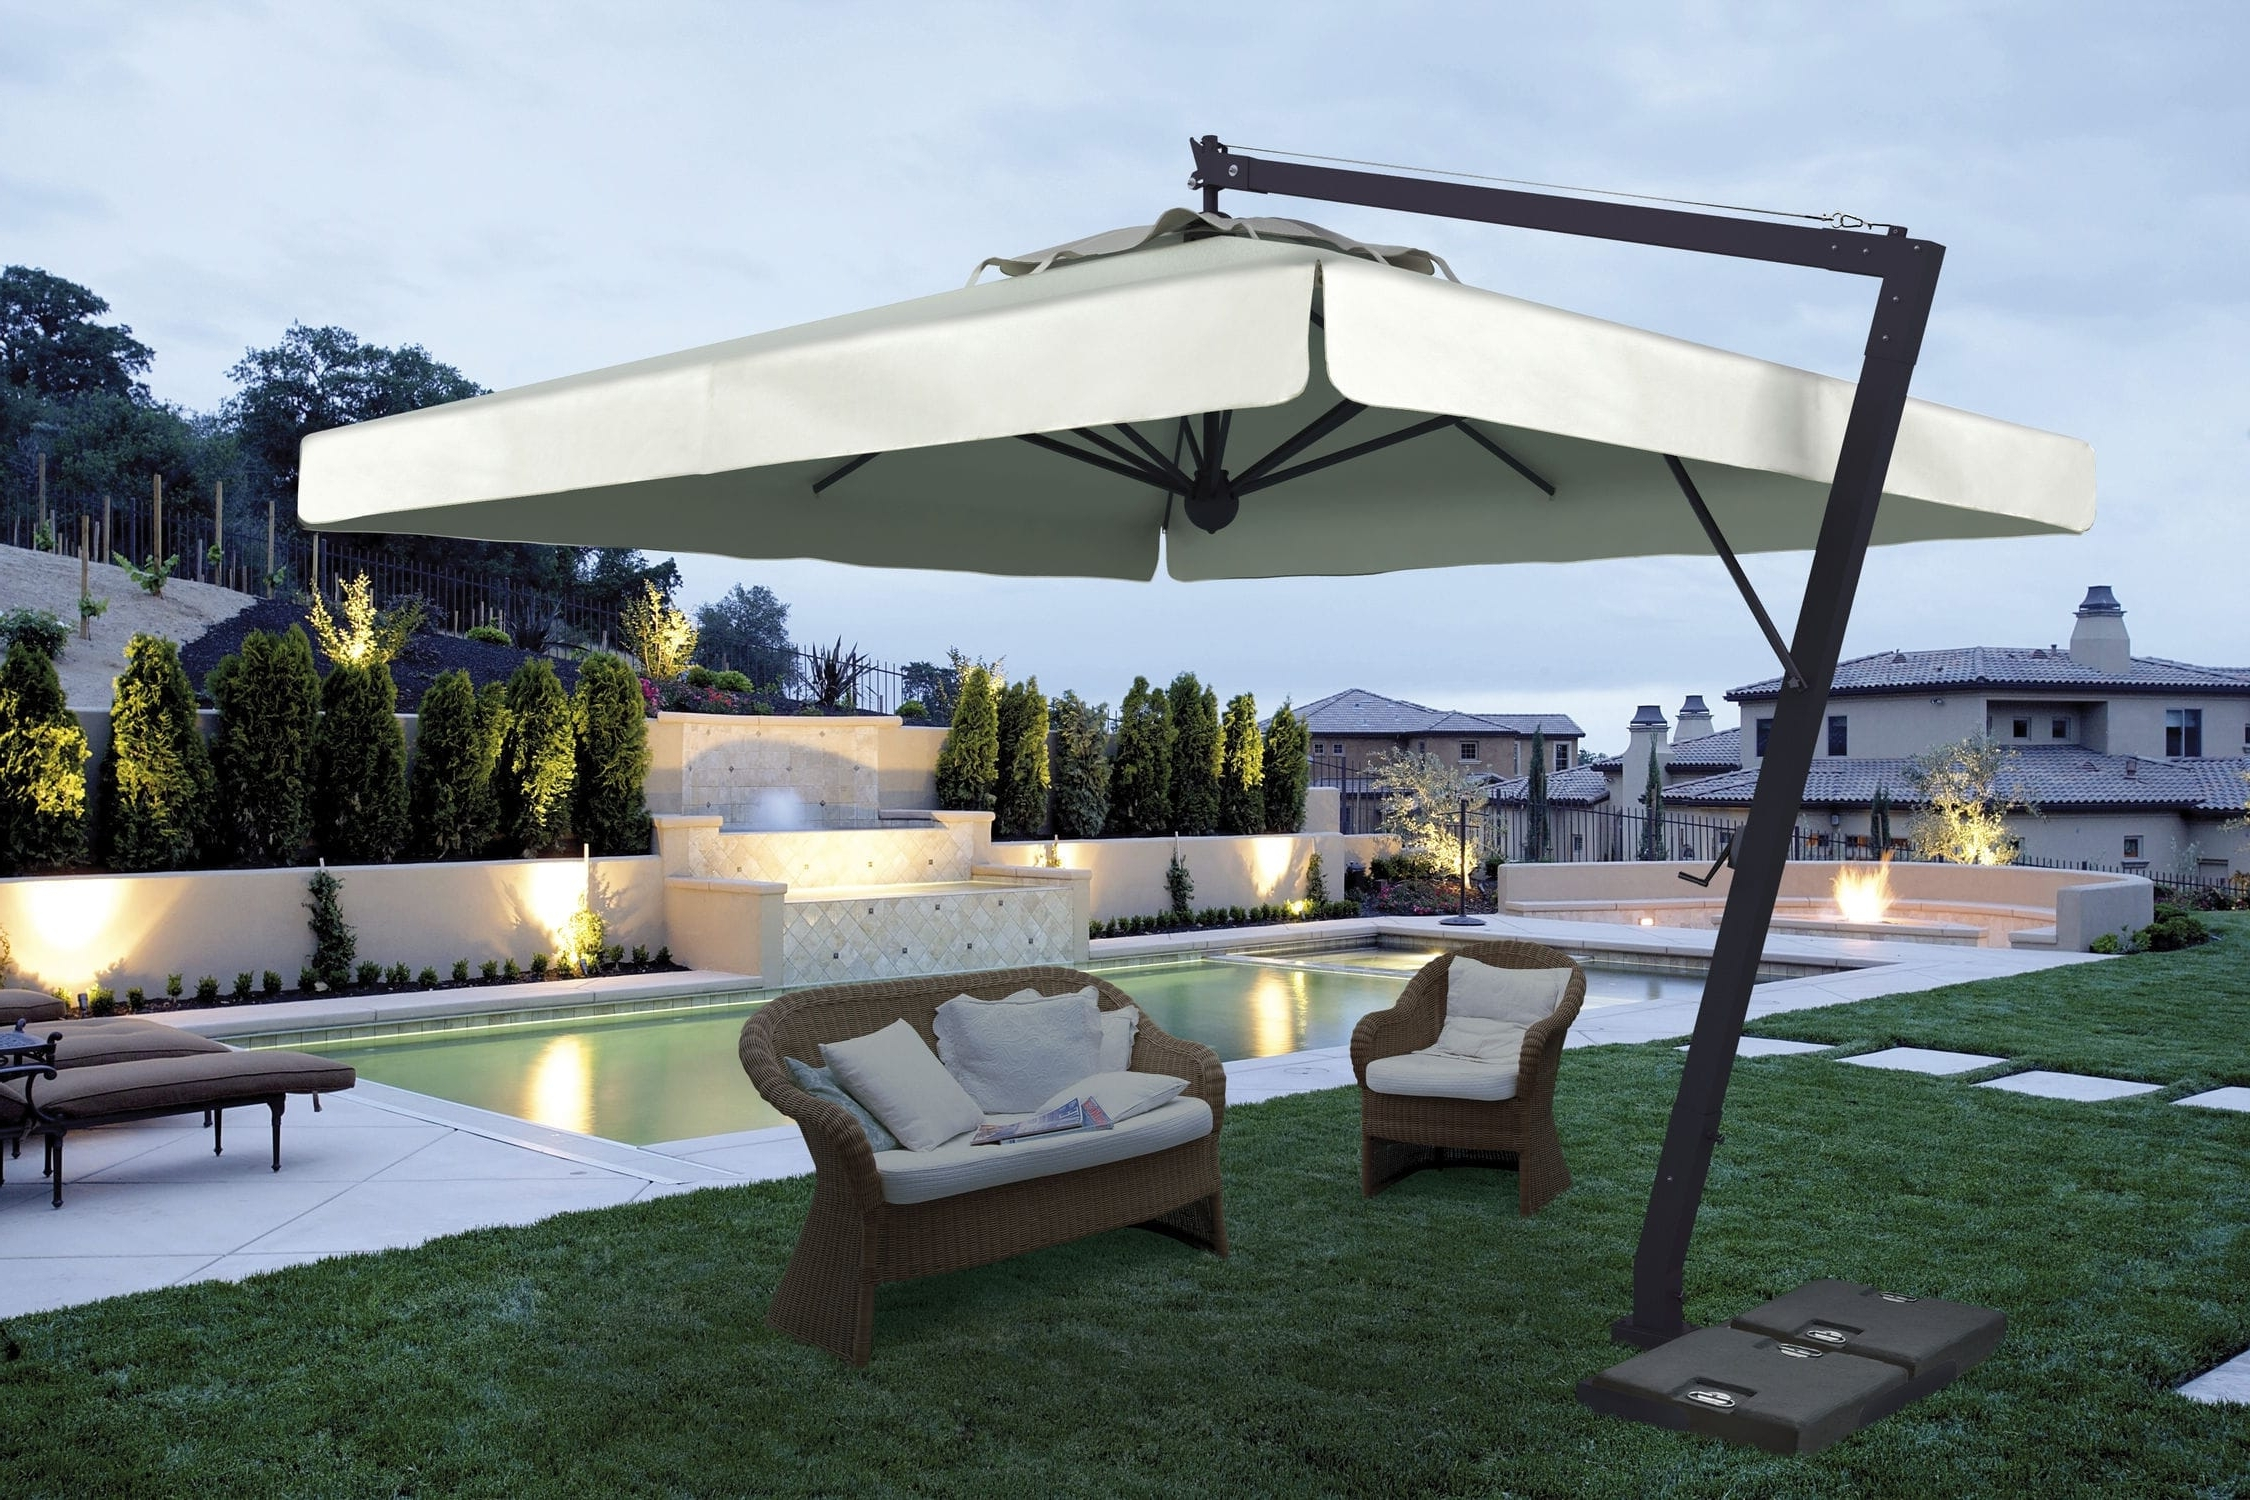 Giant Patio Umbrellas Throughout Well Known Offset Patio Umbrella Commercial Aluminum Steel Leonardo (Gallery 4 of 20)